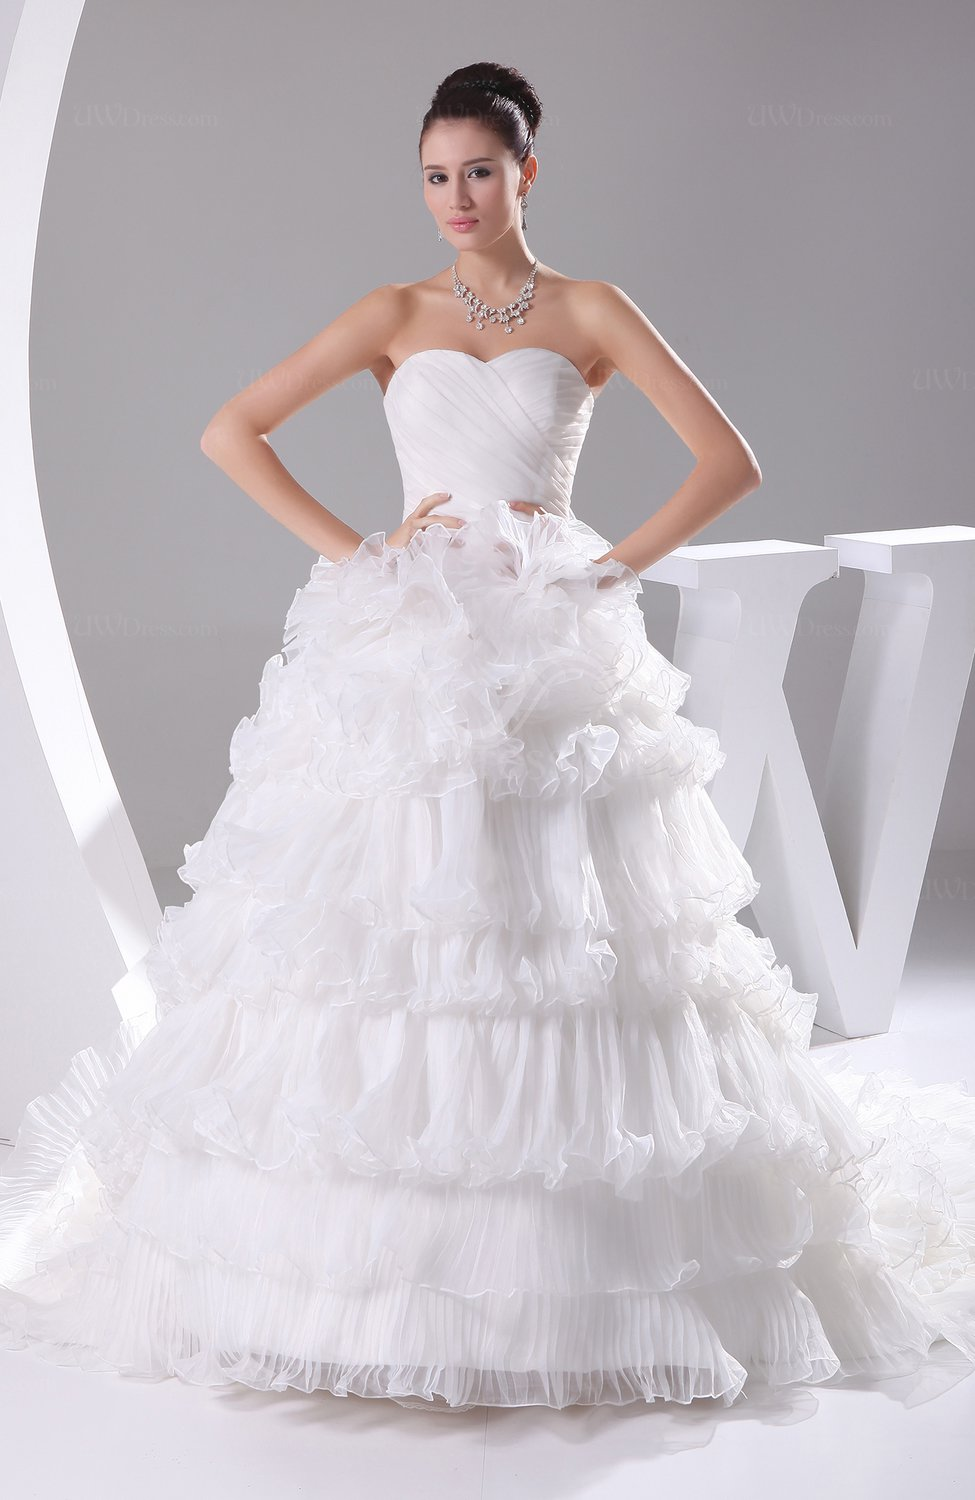 Cinderella Wedding And Evening Gowns : Cinderella church princess organza chapel train pleated bridal gowns